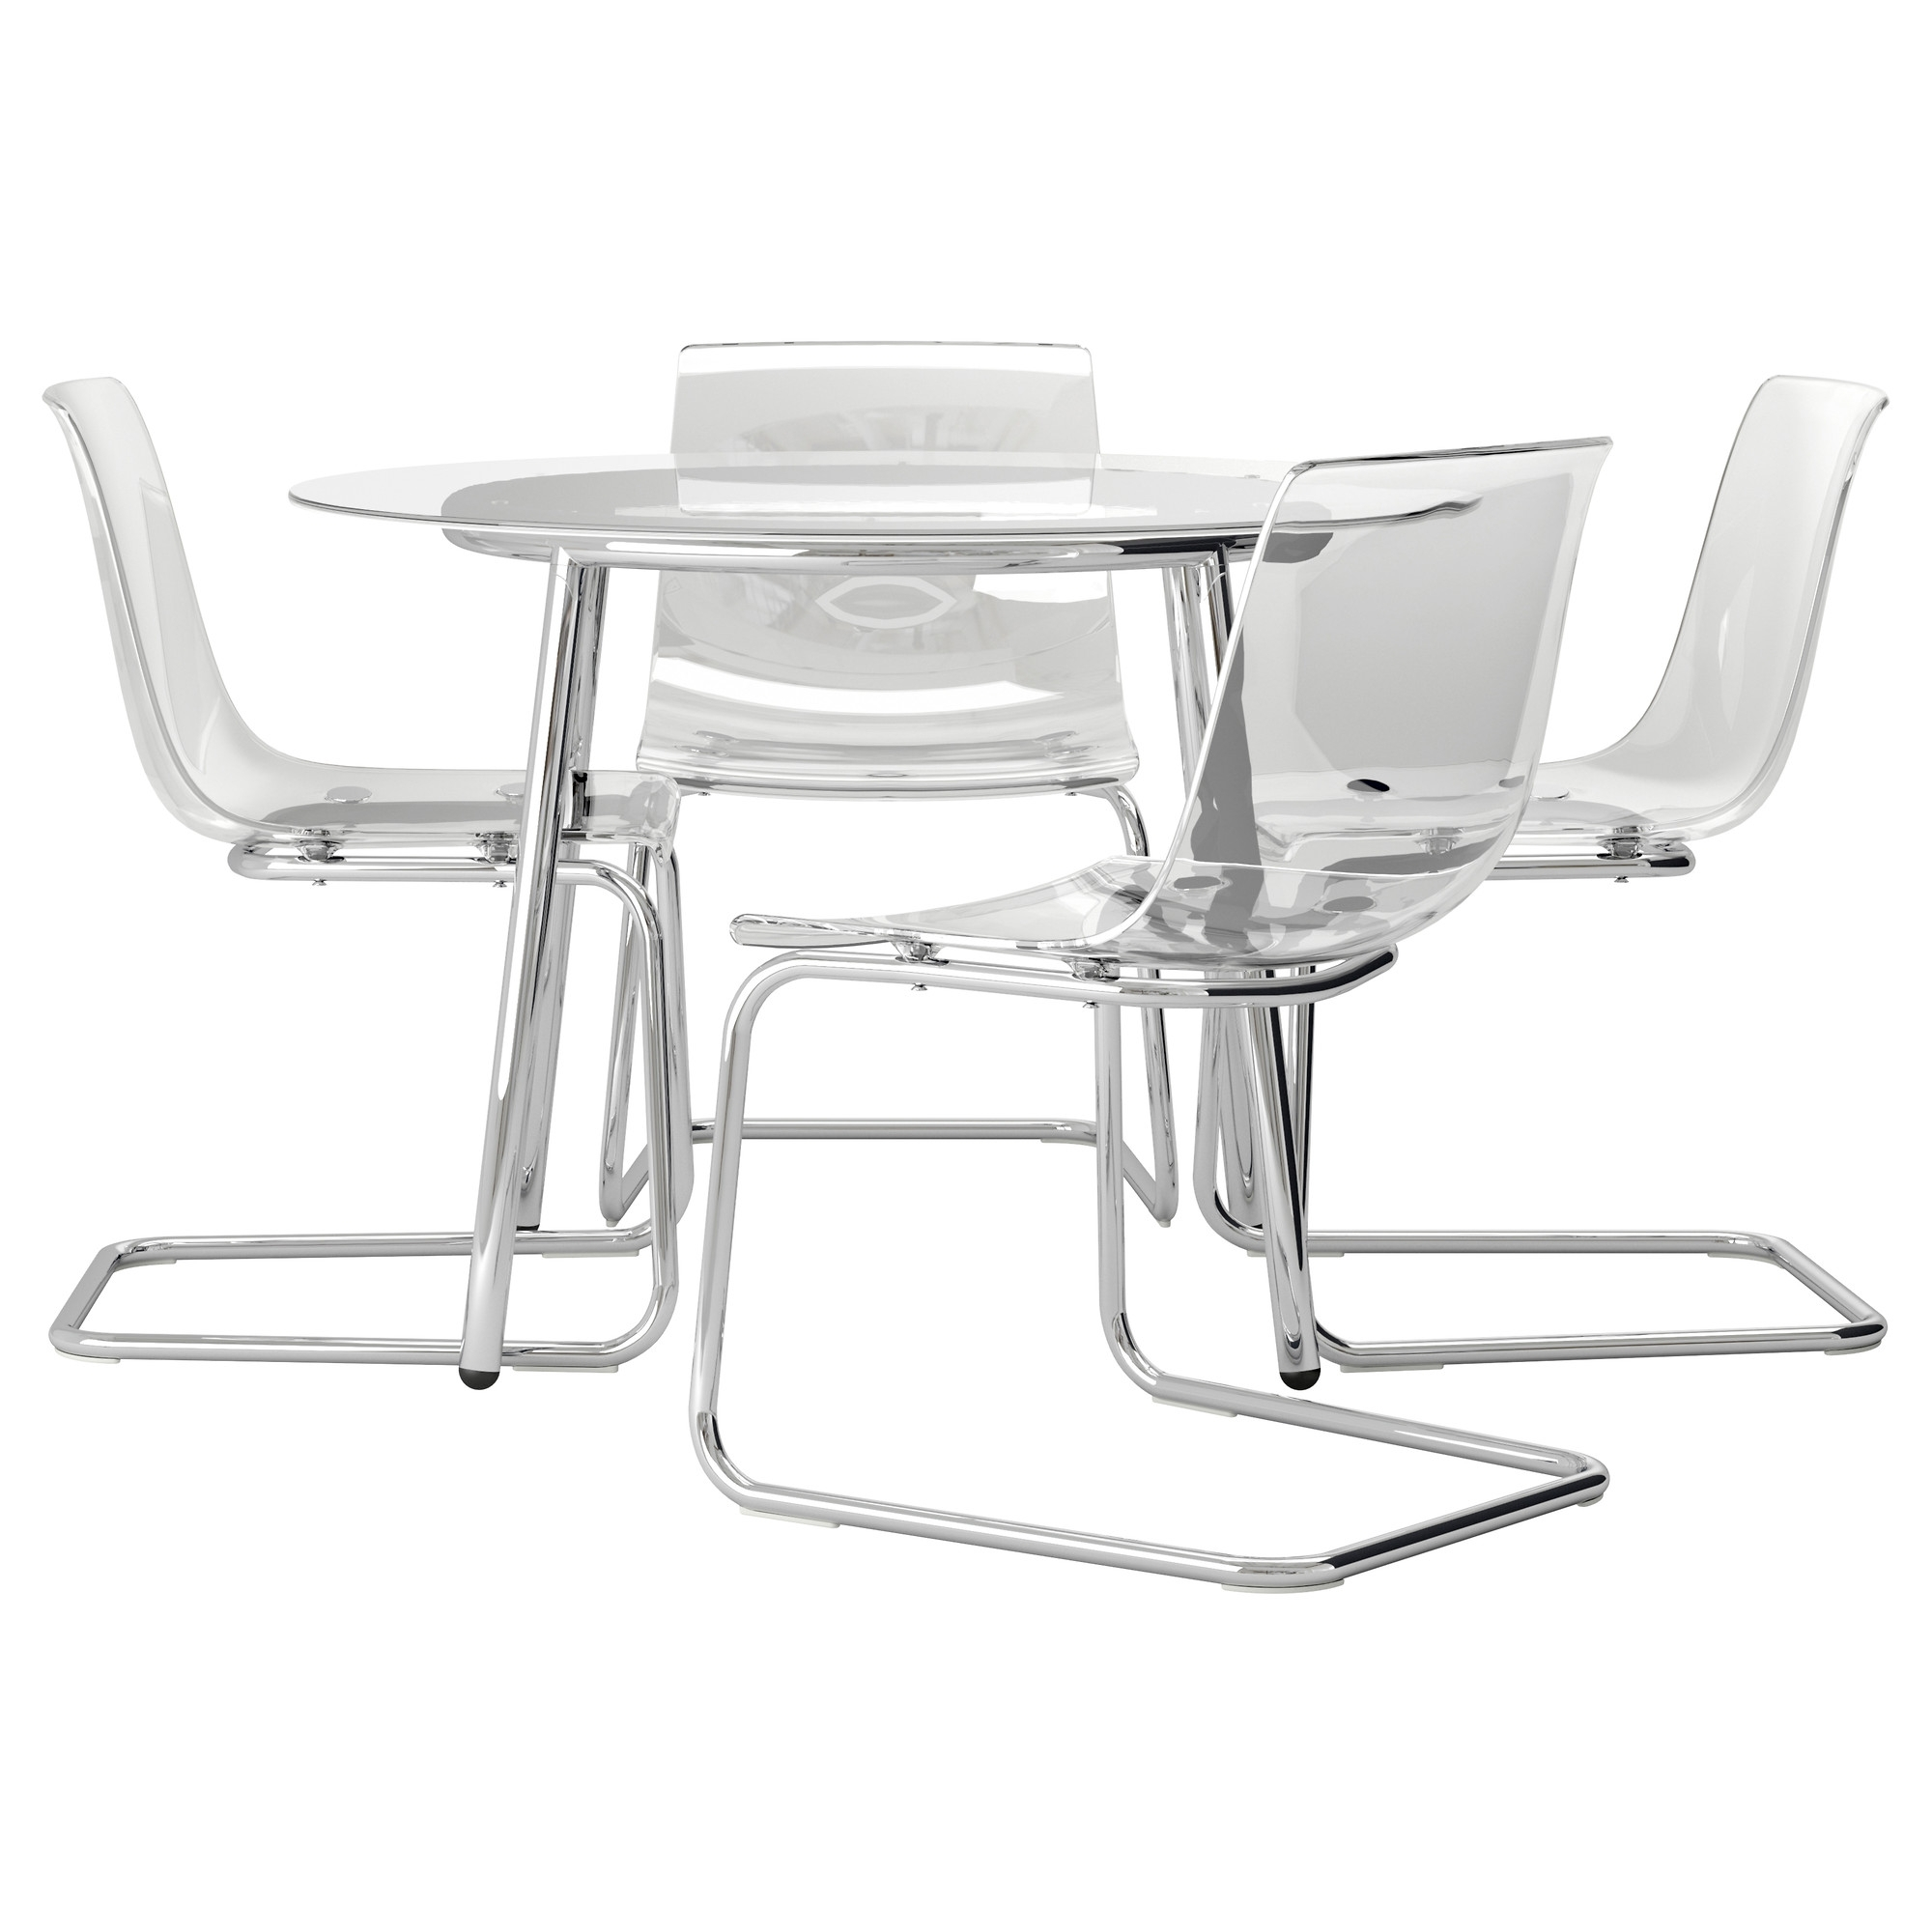 2017 Round Acrylic Dining Tables Intended For Beautiful Clear Acrylic Dining Chair With Stainless Steel Frame And (View 5 of 25)